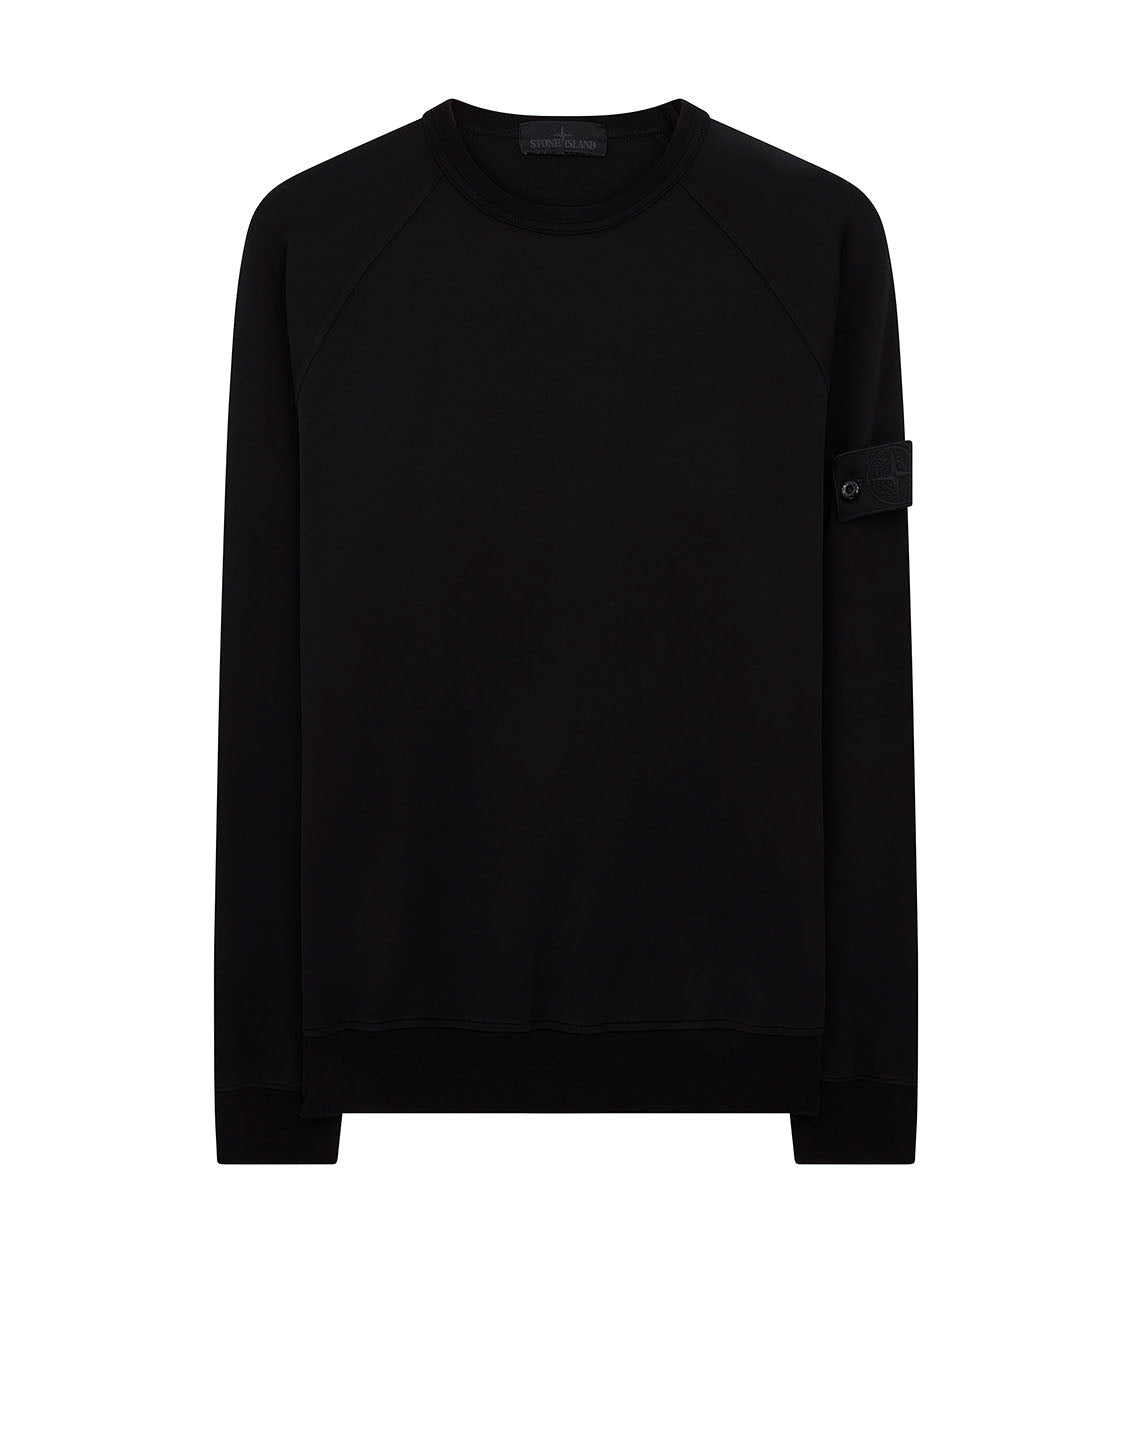 659F3 GHOST PIECE Sweatshirt in Black